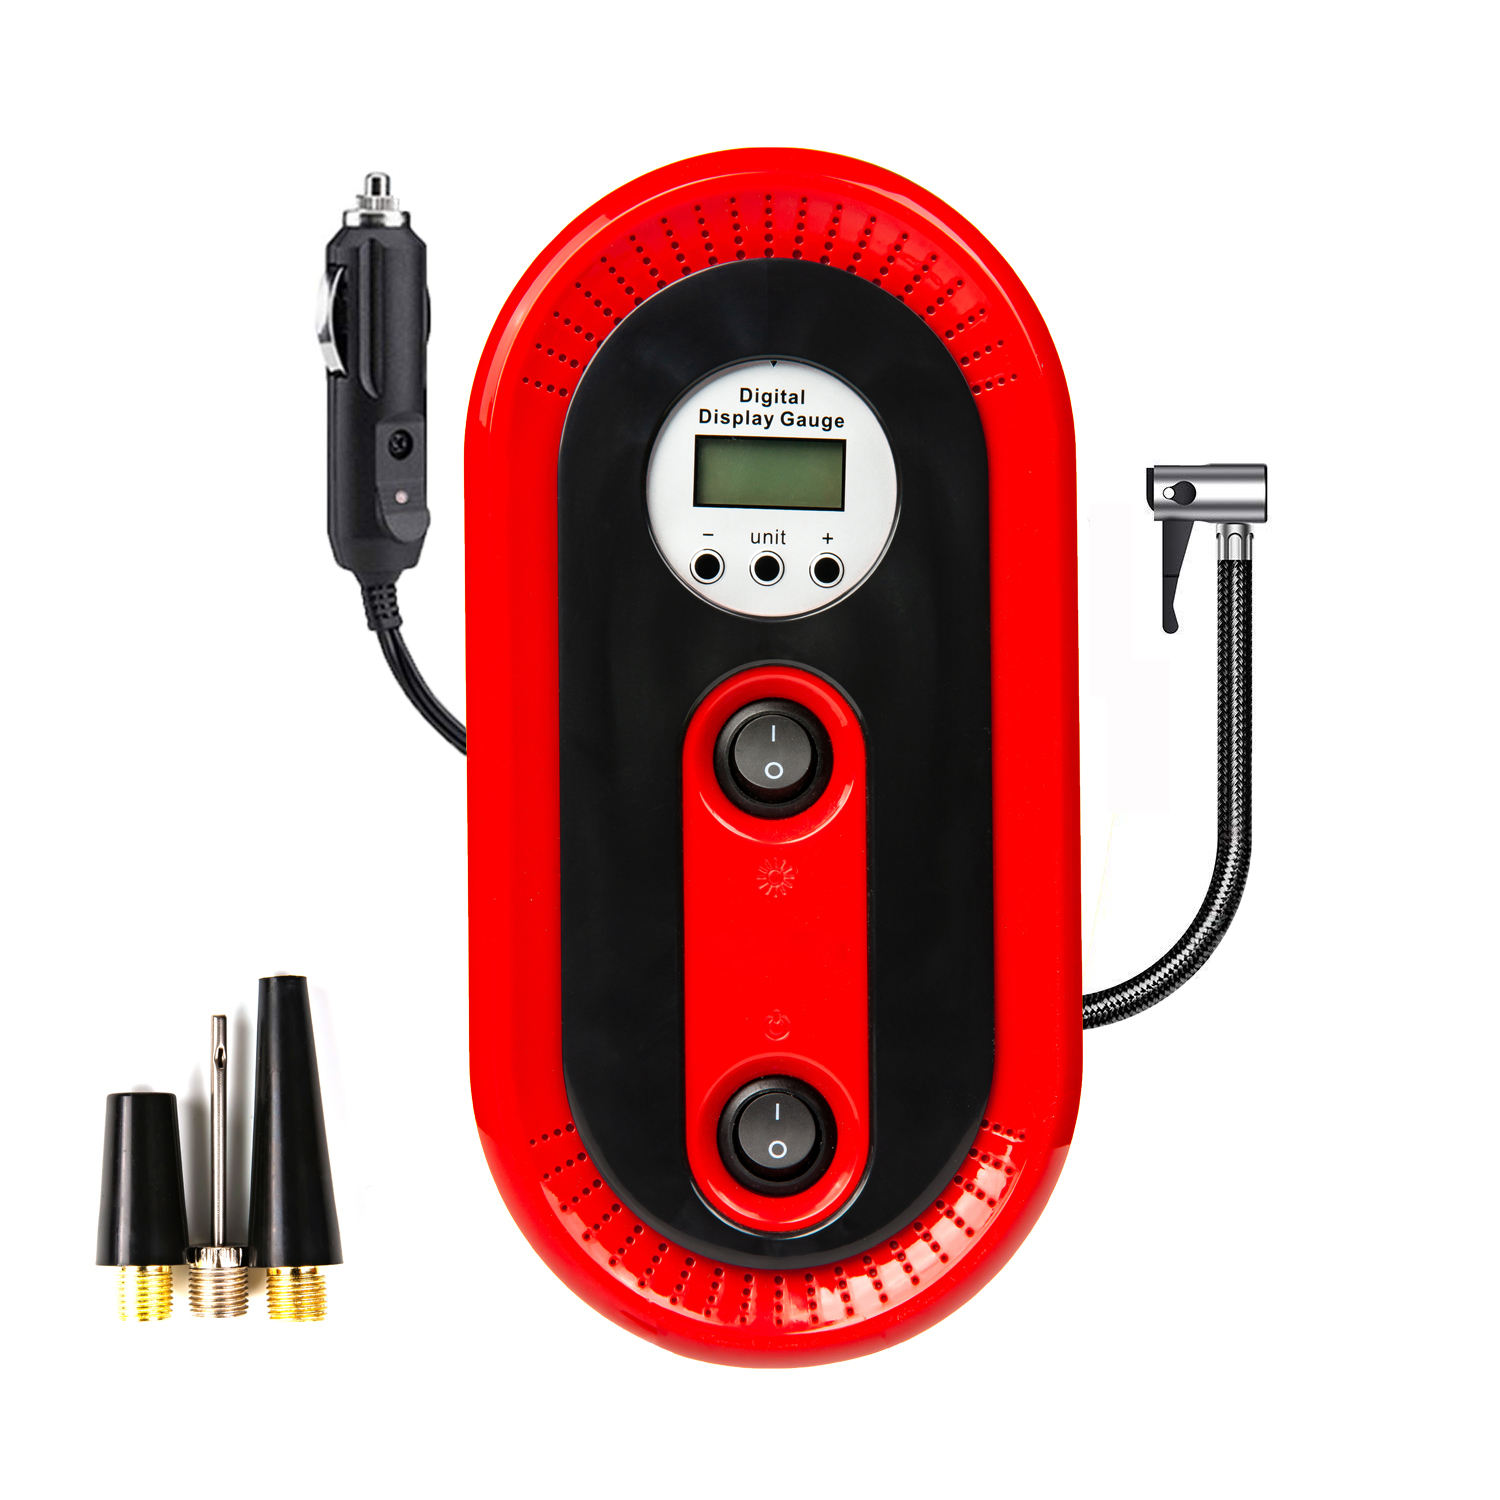 MutomatiacalConvenient tire inflator lithium For SUV,ball,air mattress,soccer balls,car,bike,inflatables,etc.Red